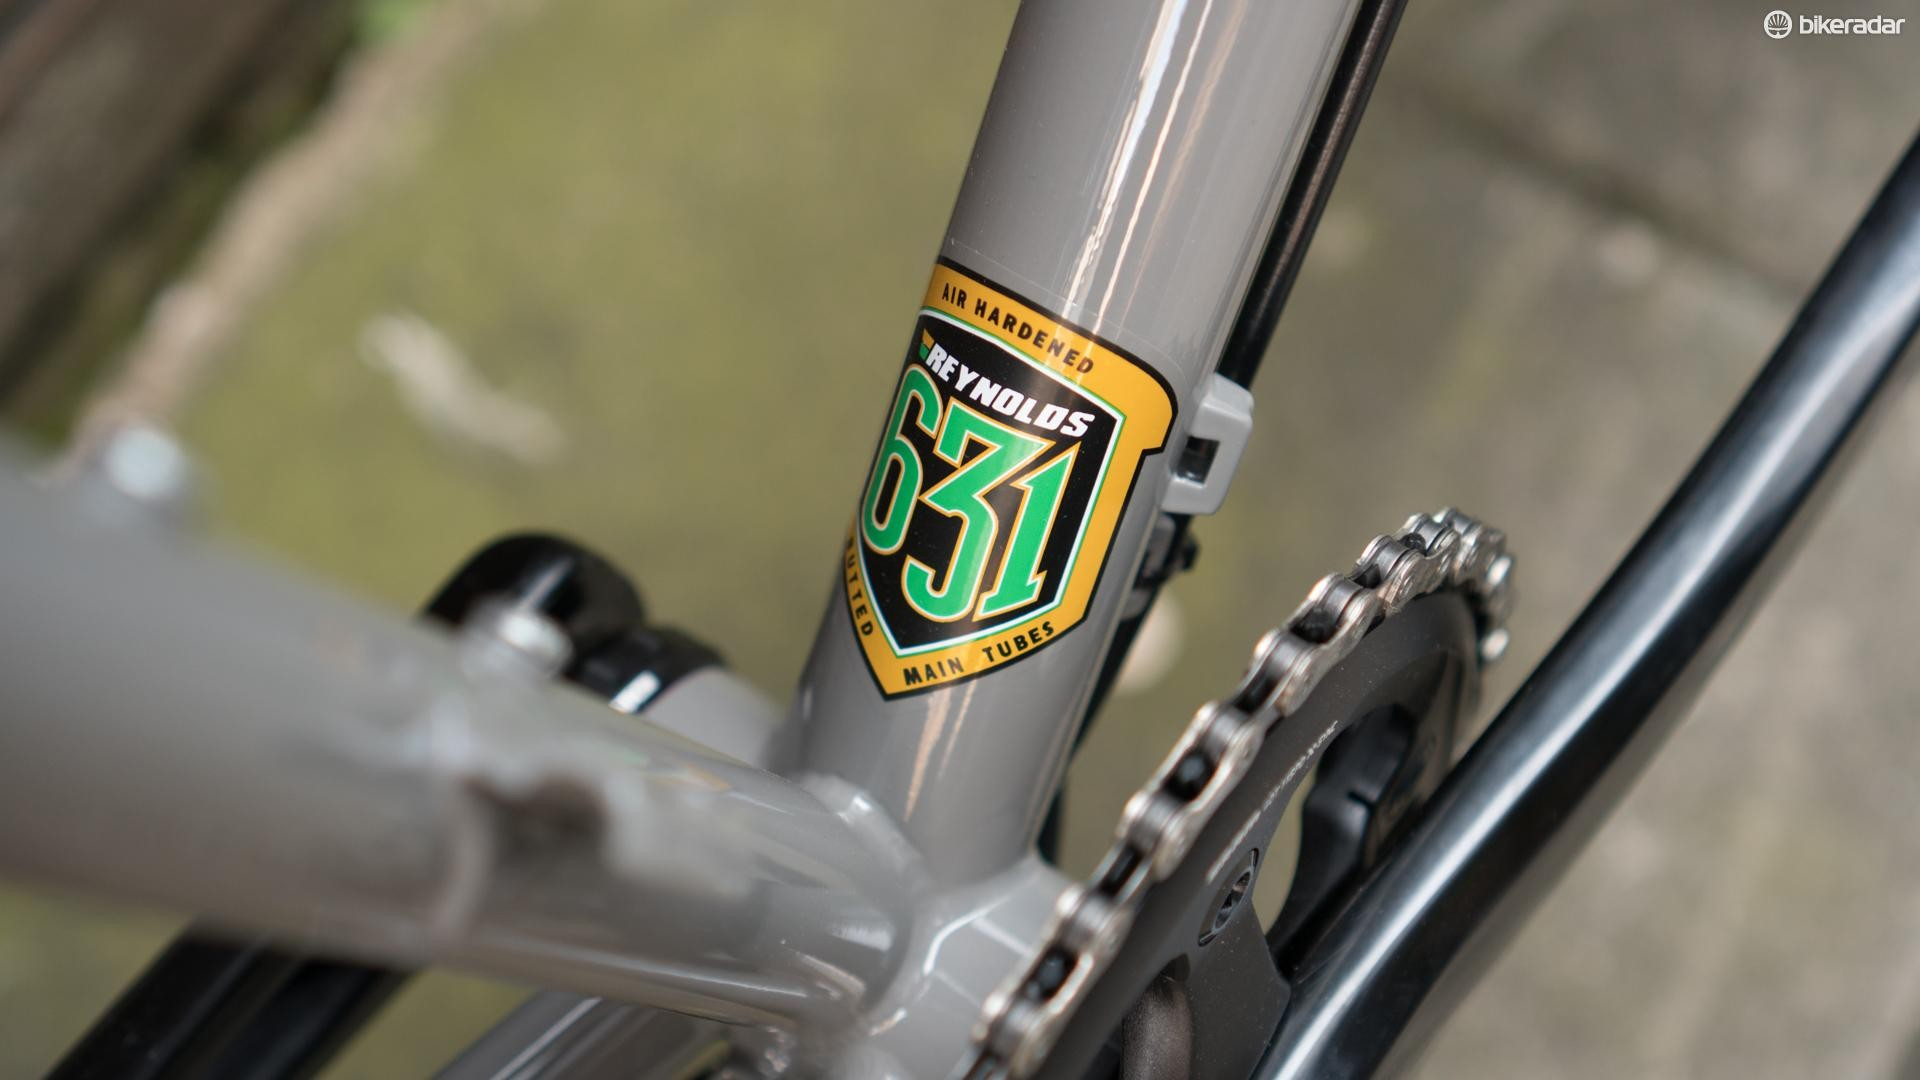 Reynolds 631 is an evolution of the iconic 531, a durable steel that's ideal for touring bikes